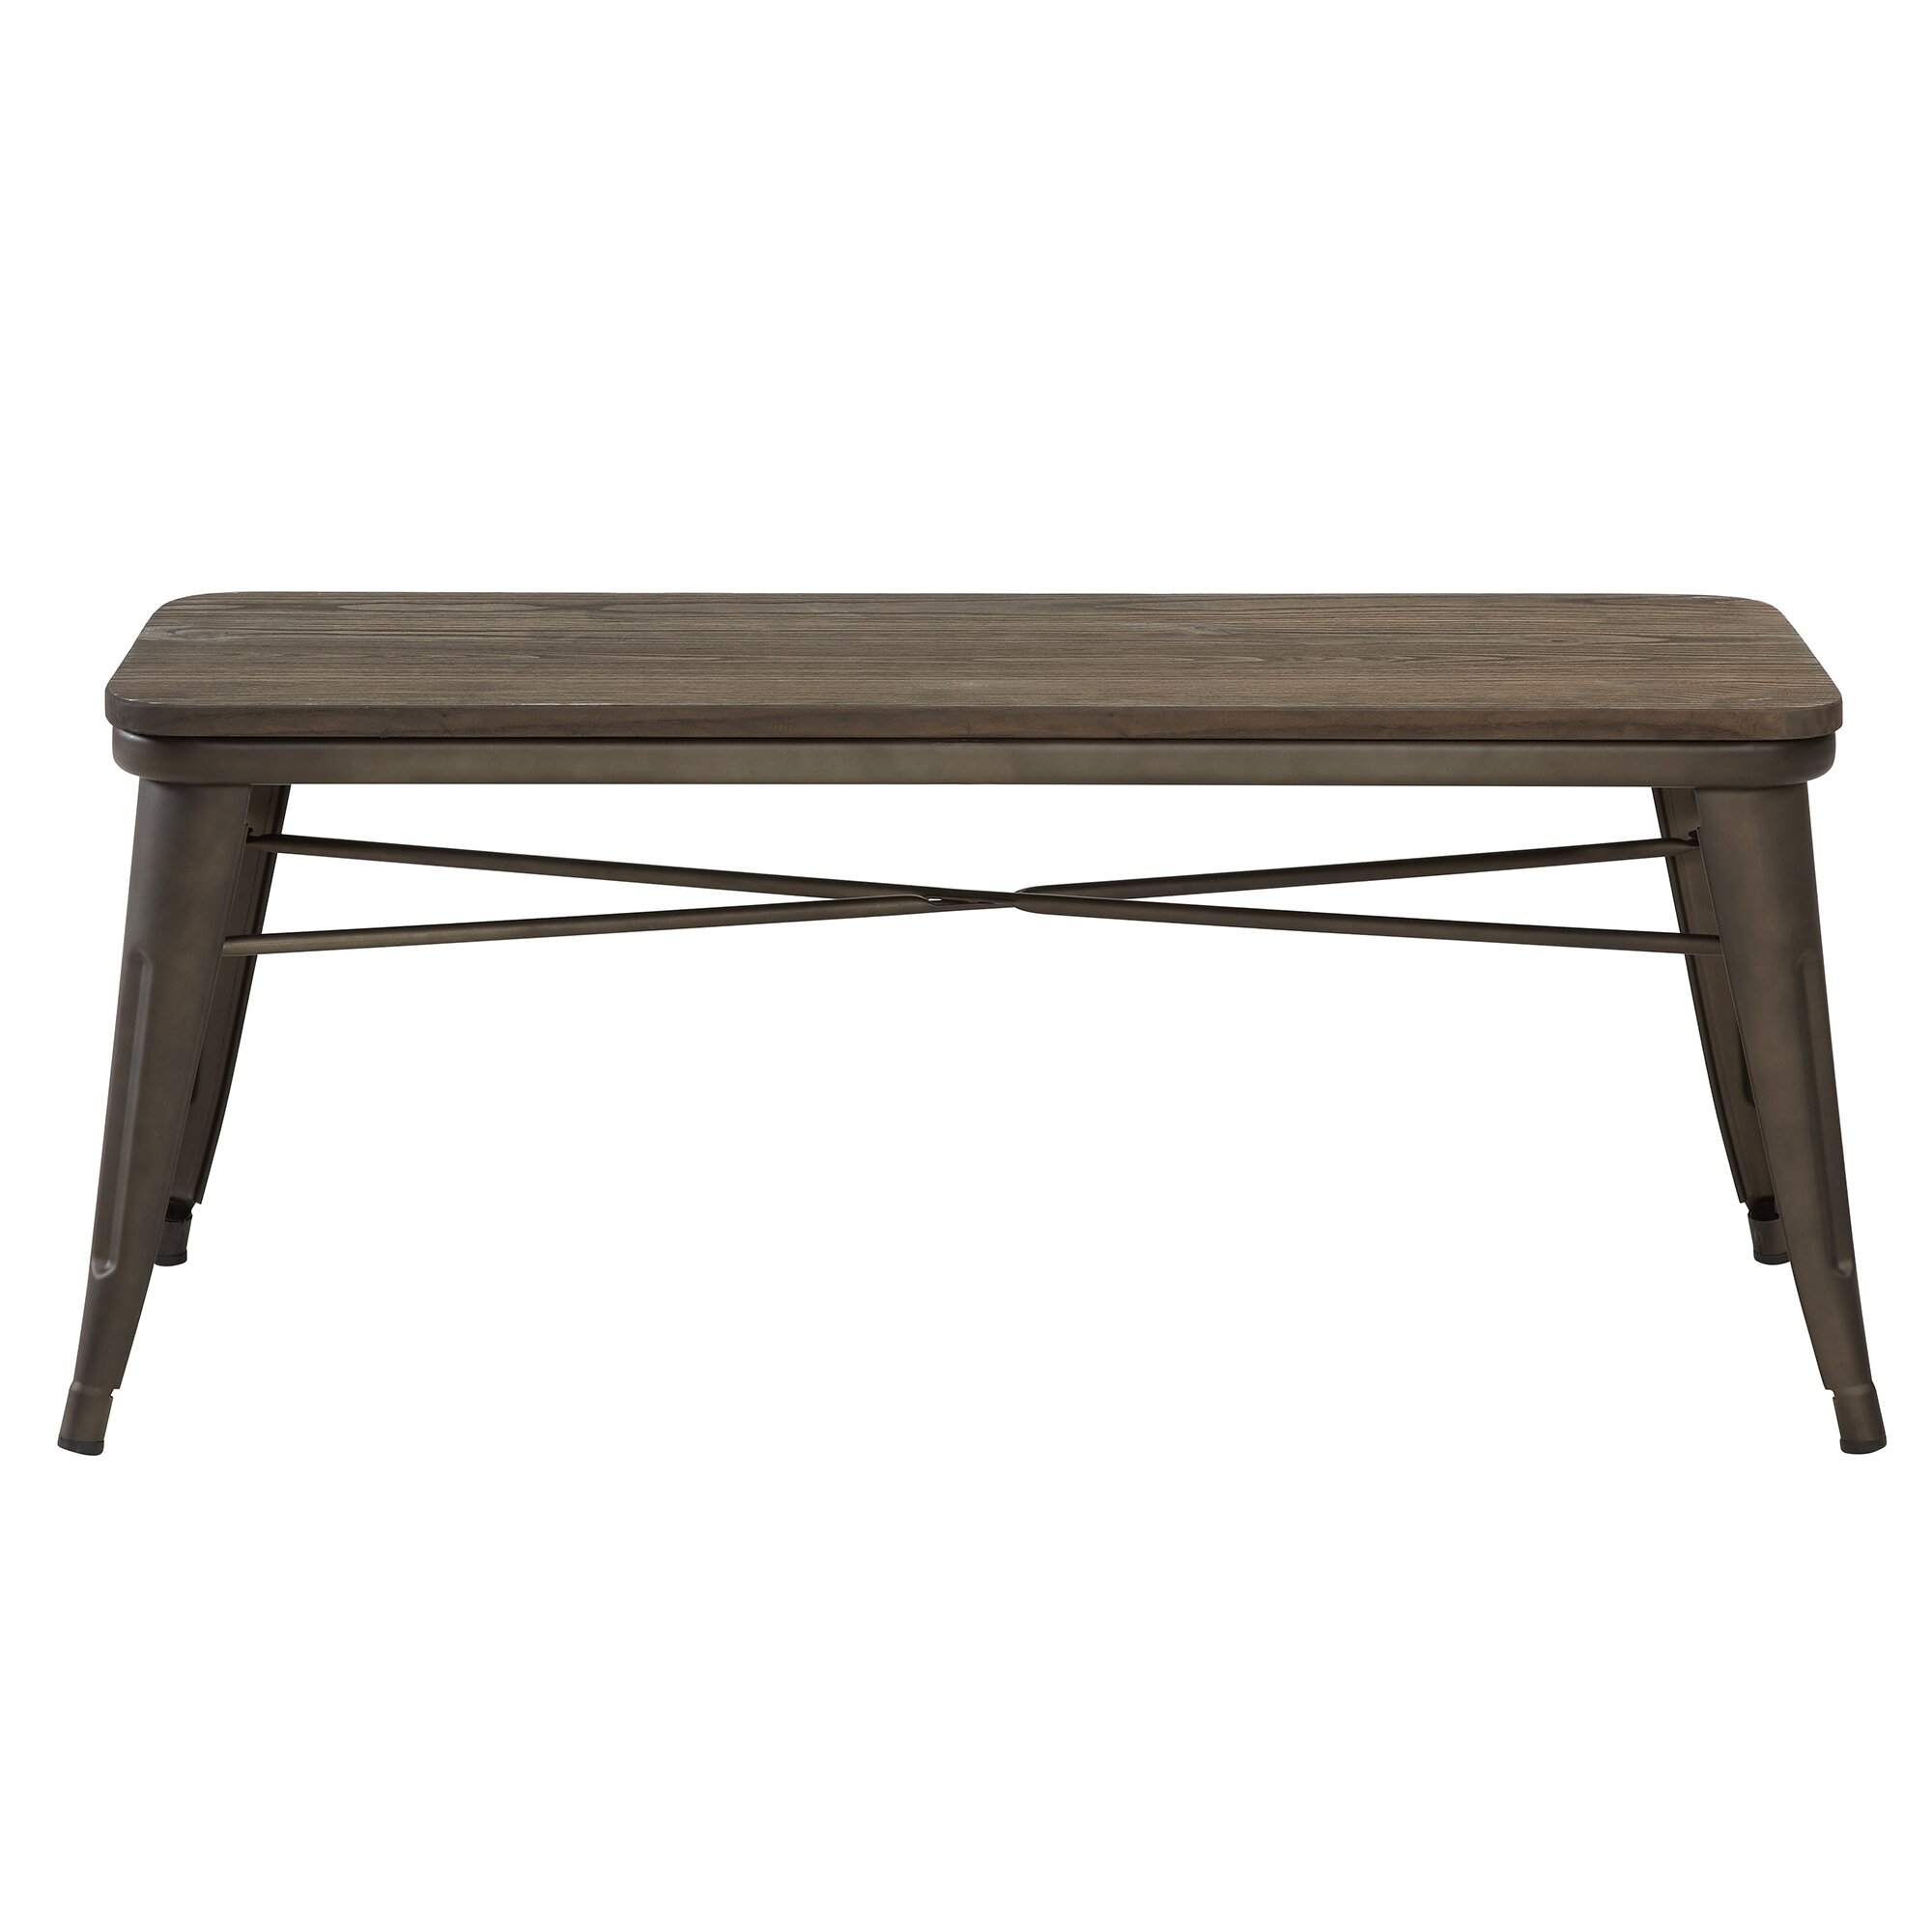 metal dining bench  gallery image lautarii - previousnext